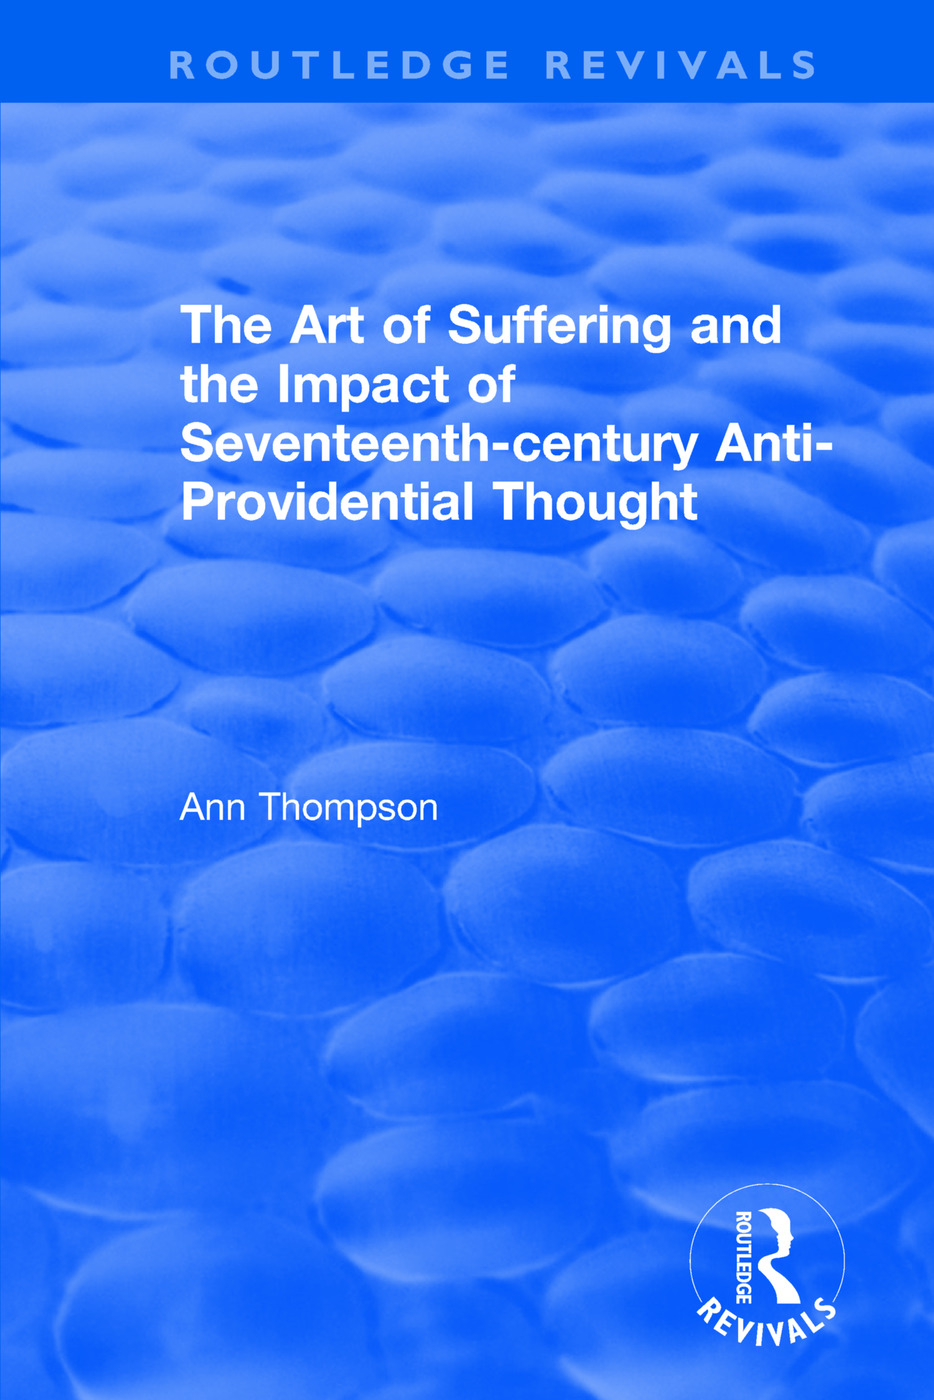 The Art of Suffering and the Impact of Seventeenth-century Anti-Providential Thought